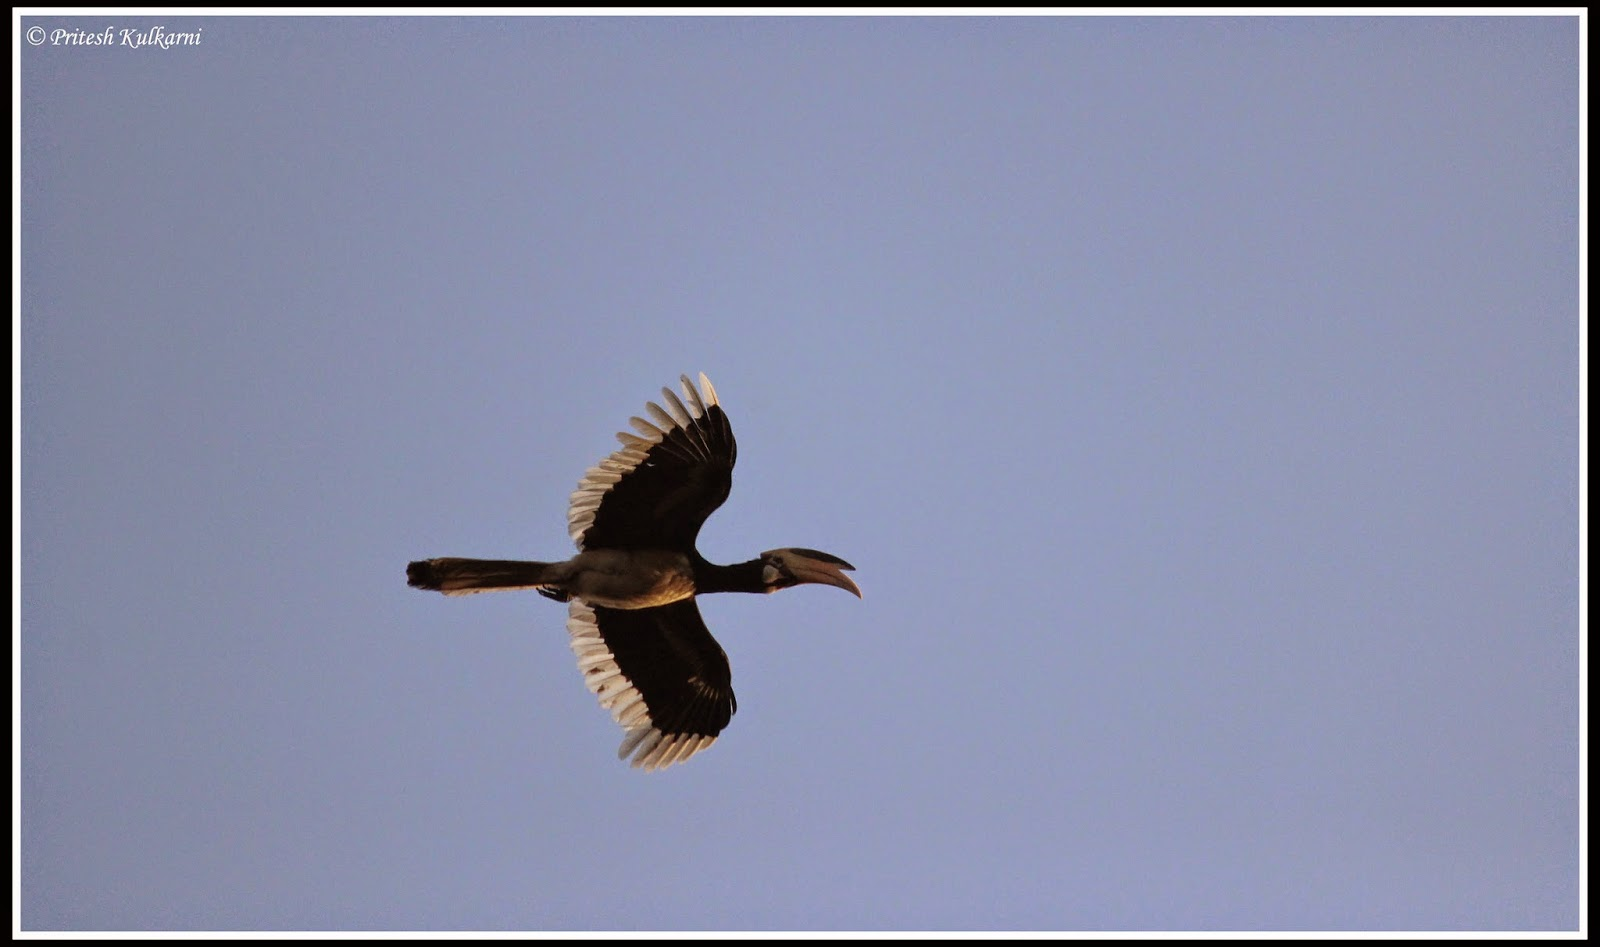 Malabar Pied Hornbill at Old Magazine House